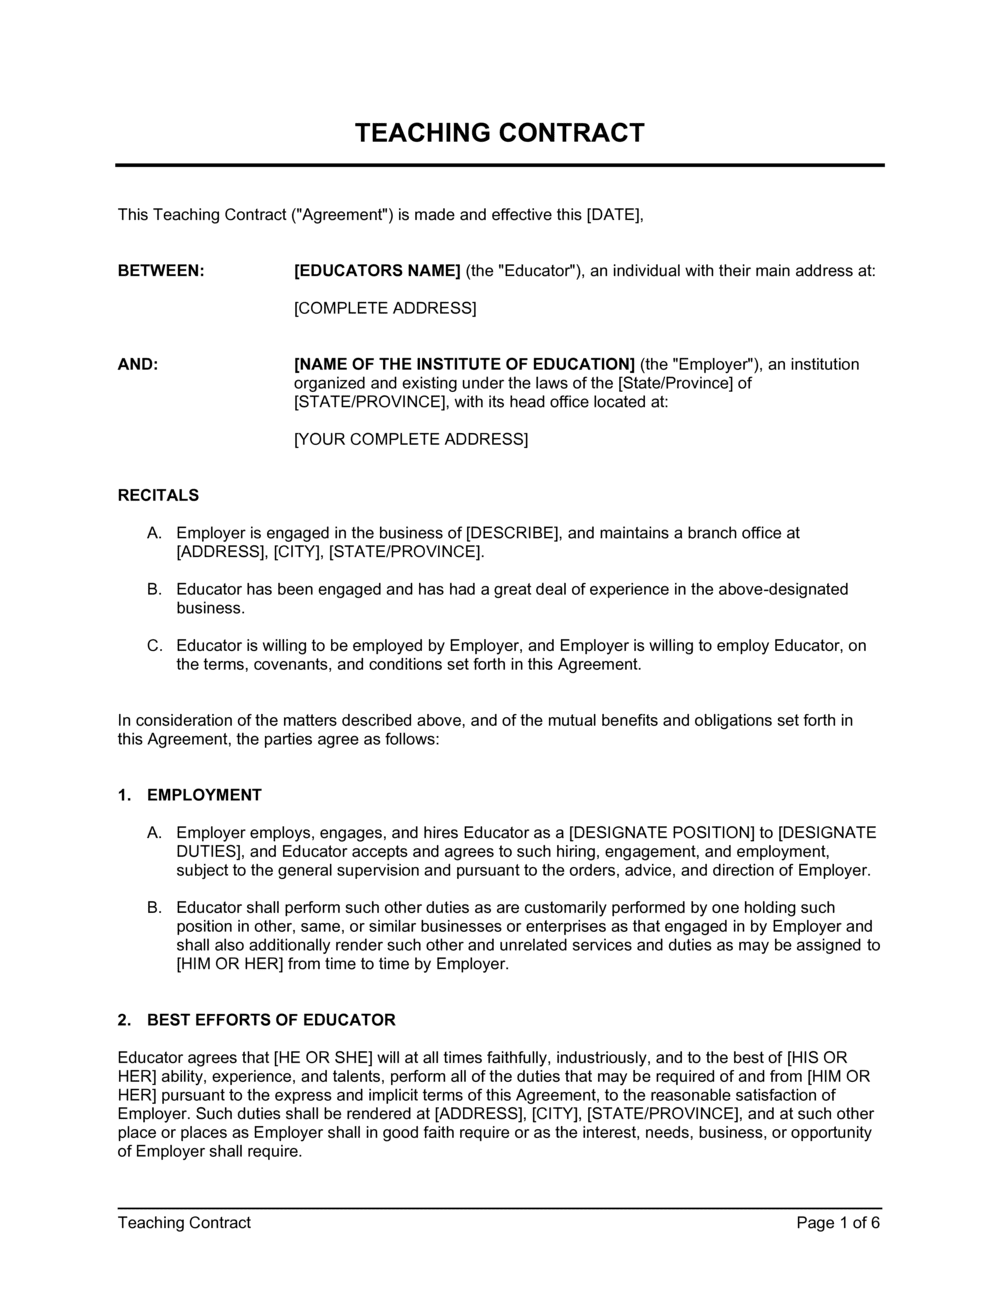 Business-in-a-Box's Teaching Contract Template